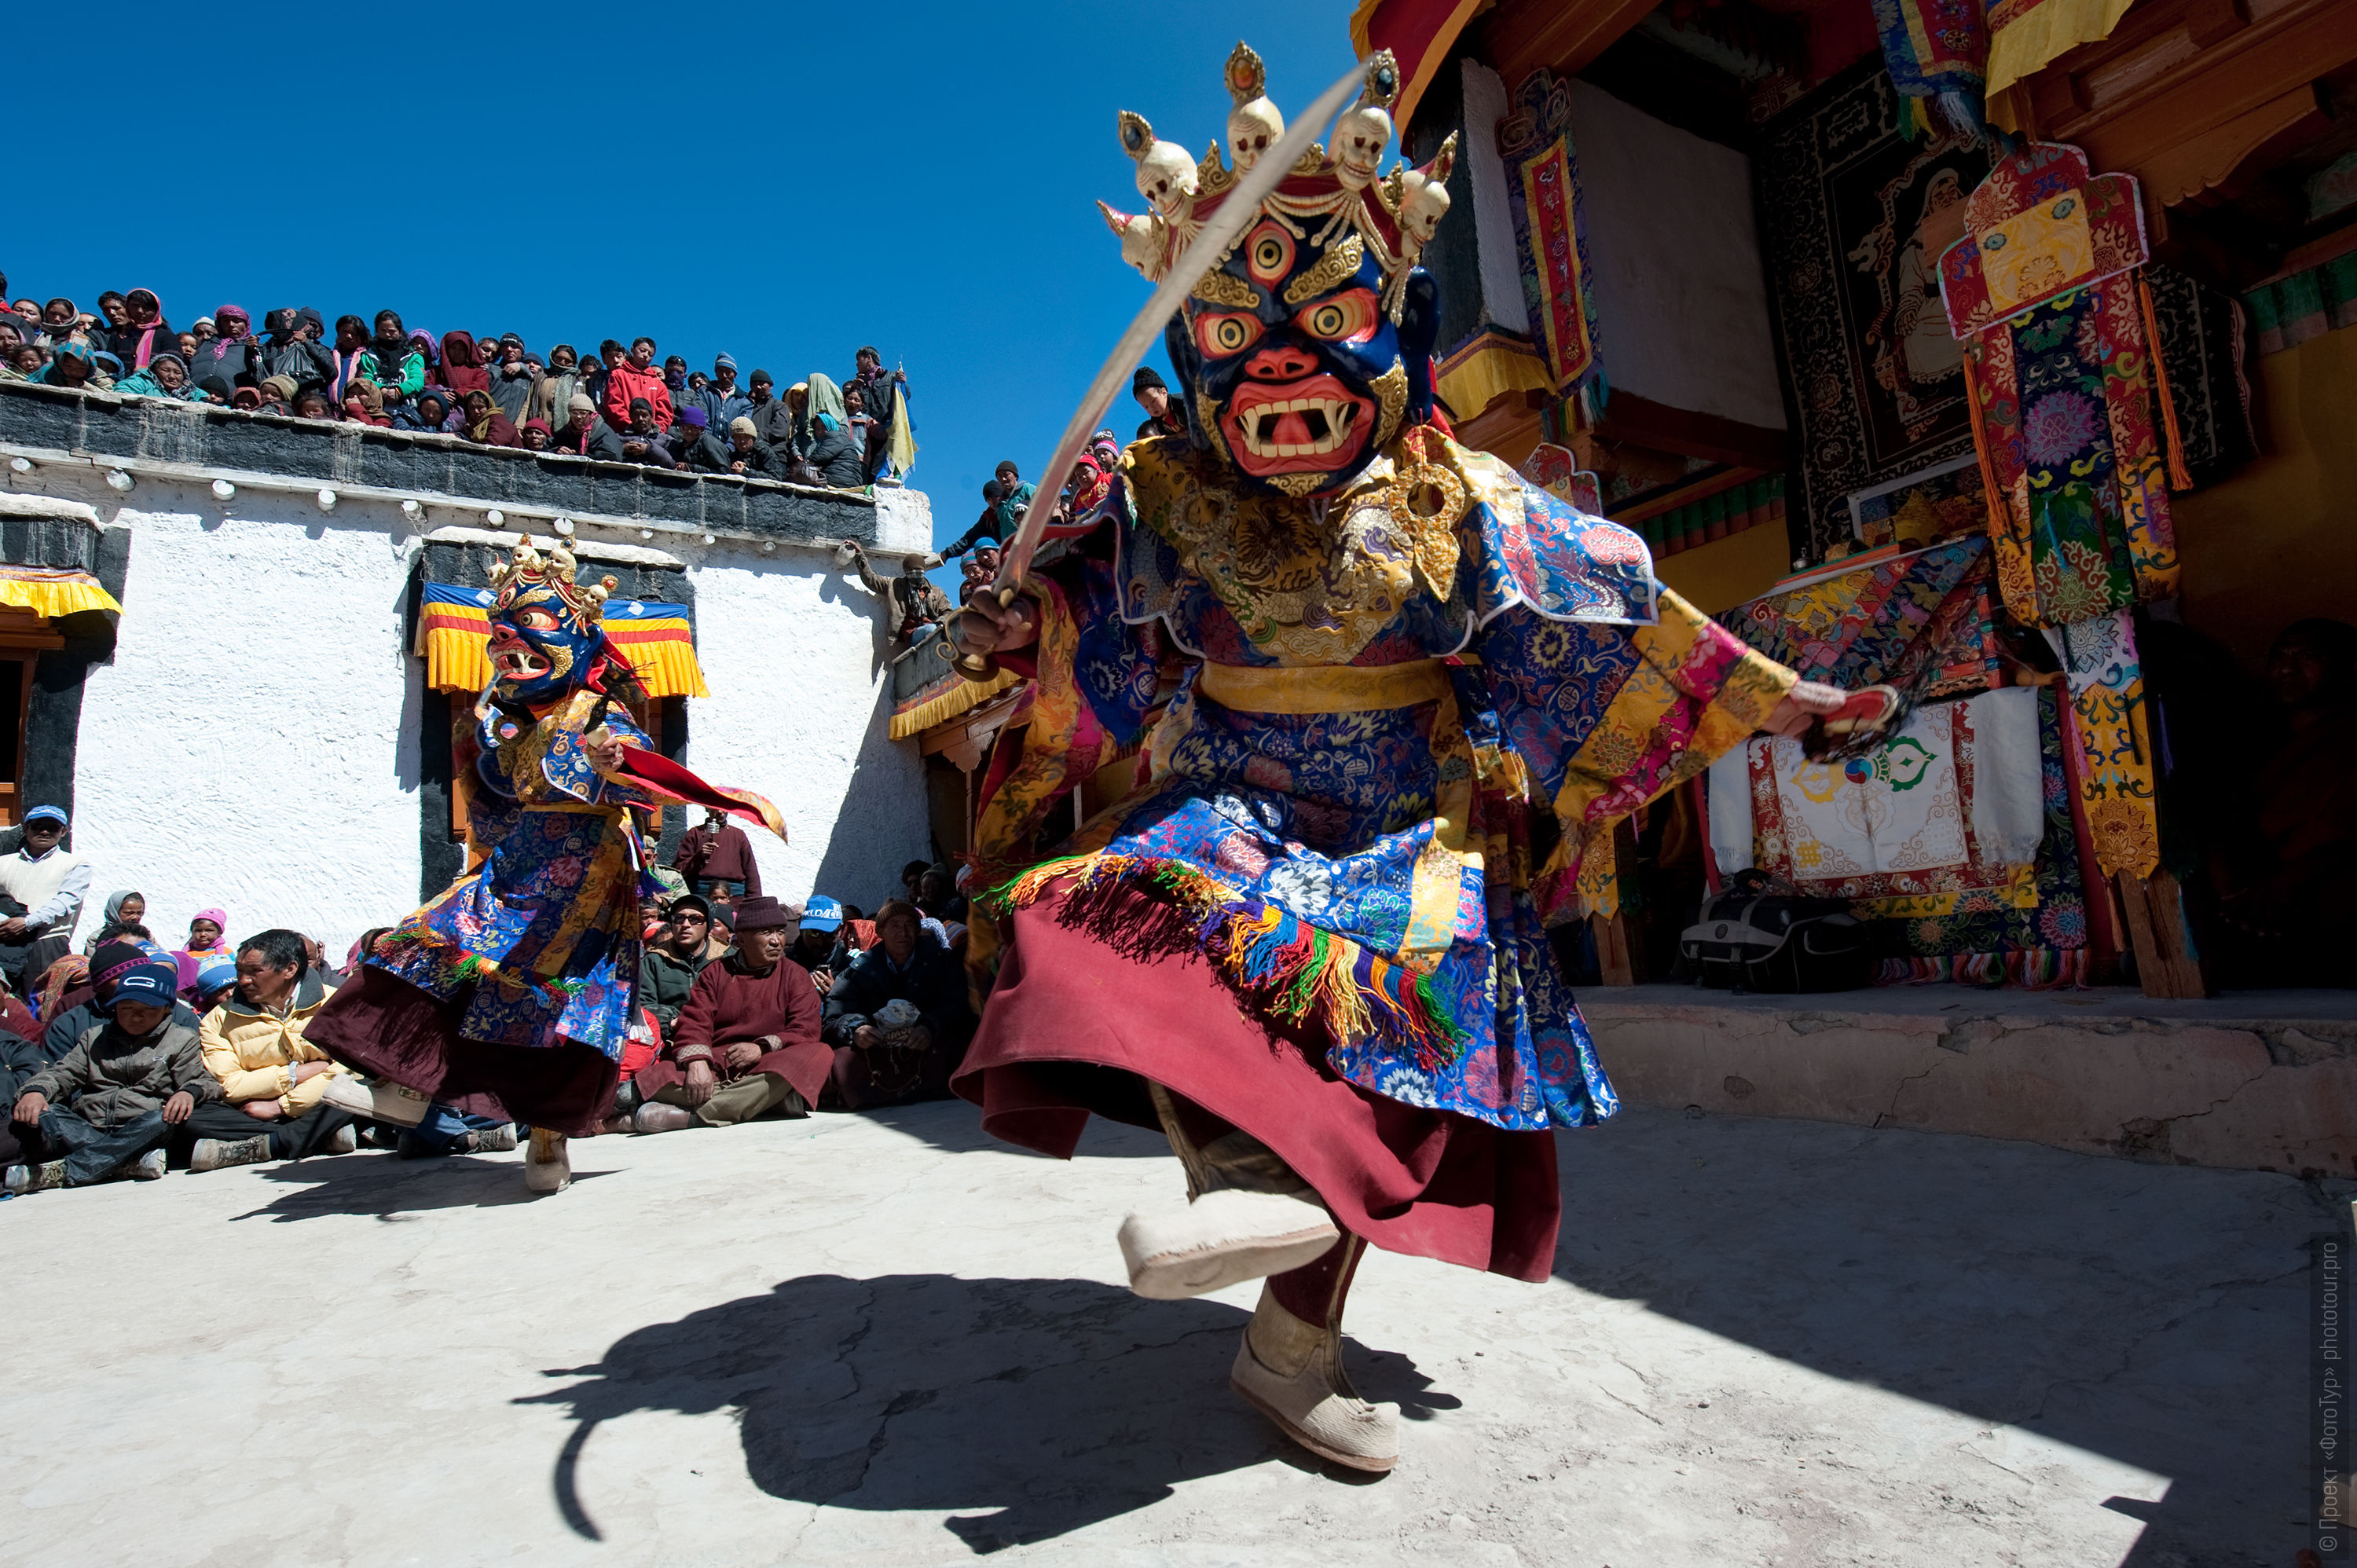 Skeleton Dance at the Stock Monastery. Photo tour to Tibet for the Winter Mysteries in Ladakh, Stok and Matho monasteries, 01.03. - 03/10/2020